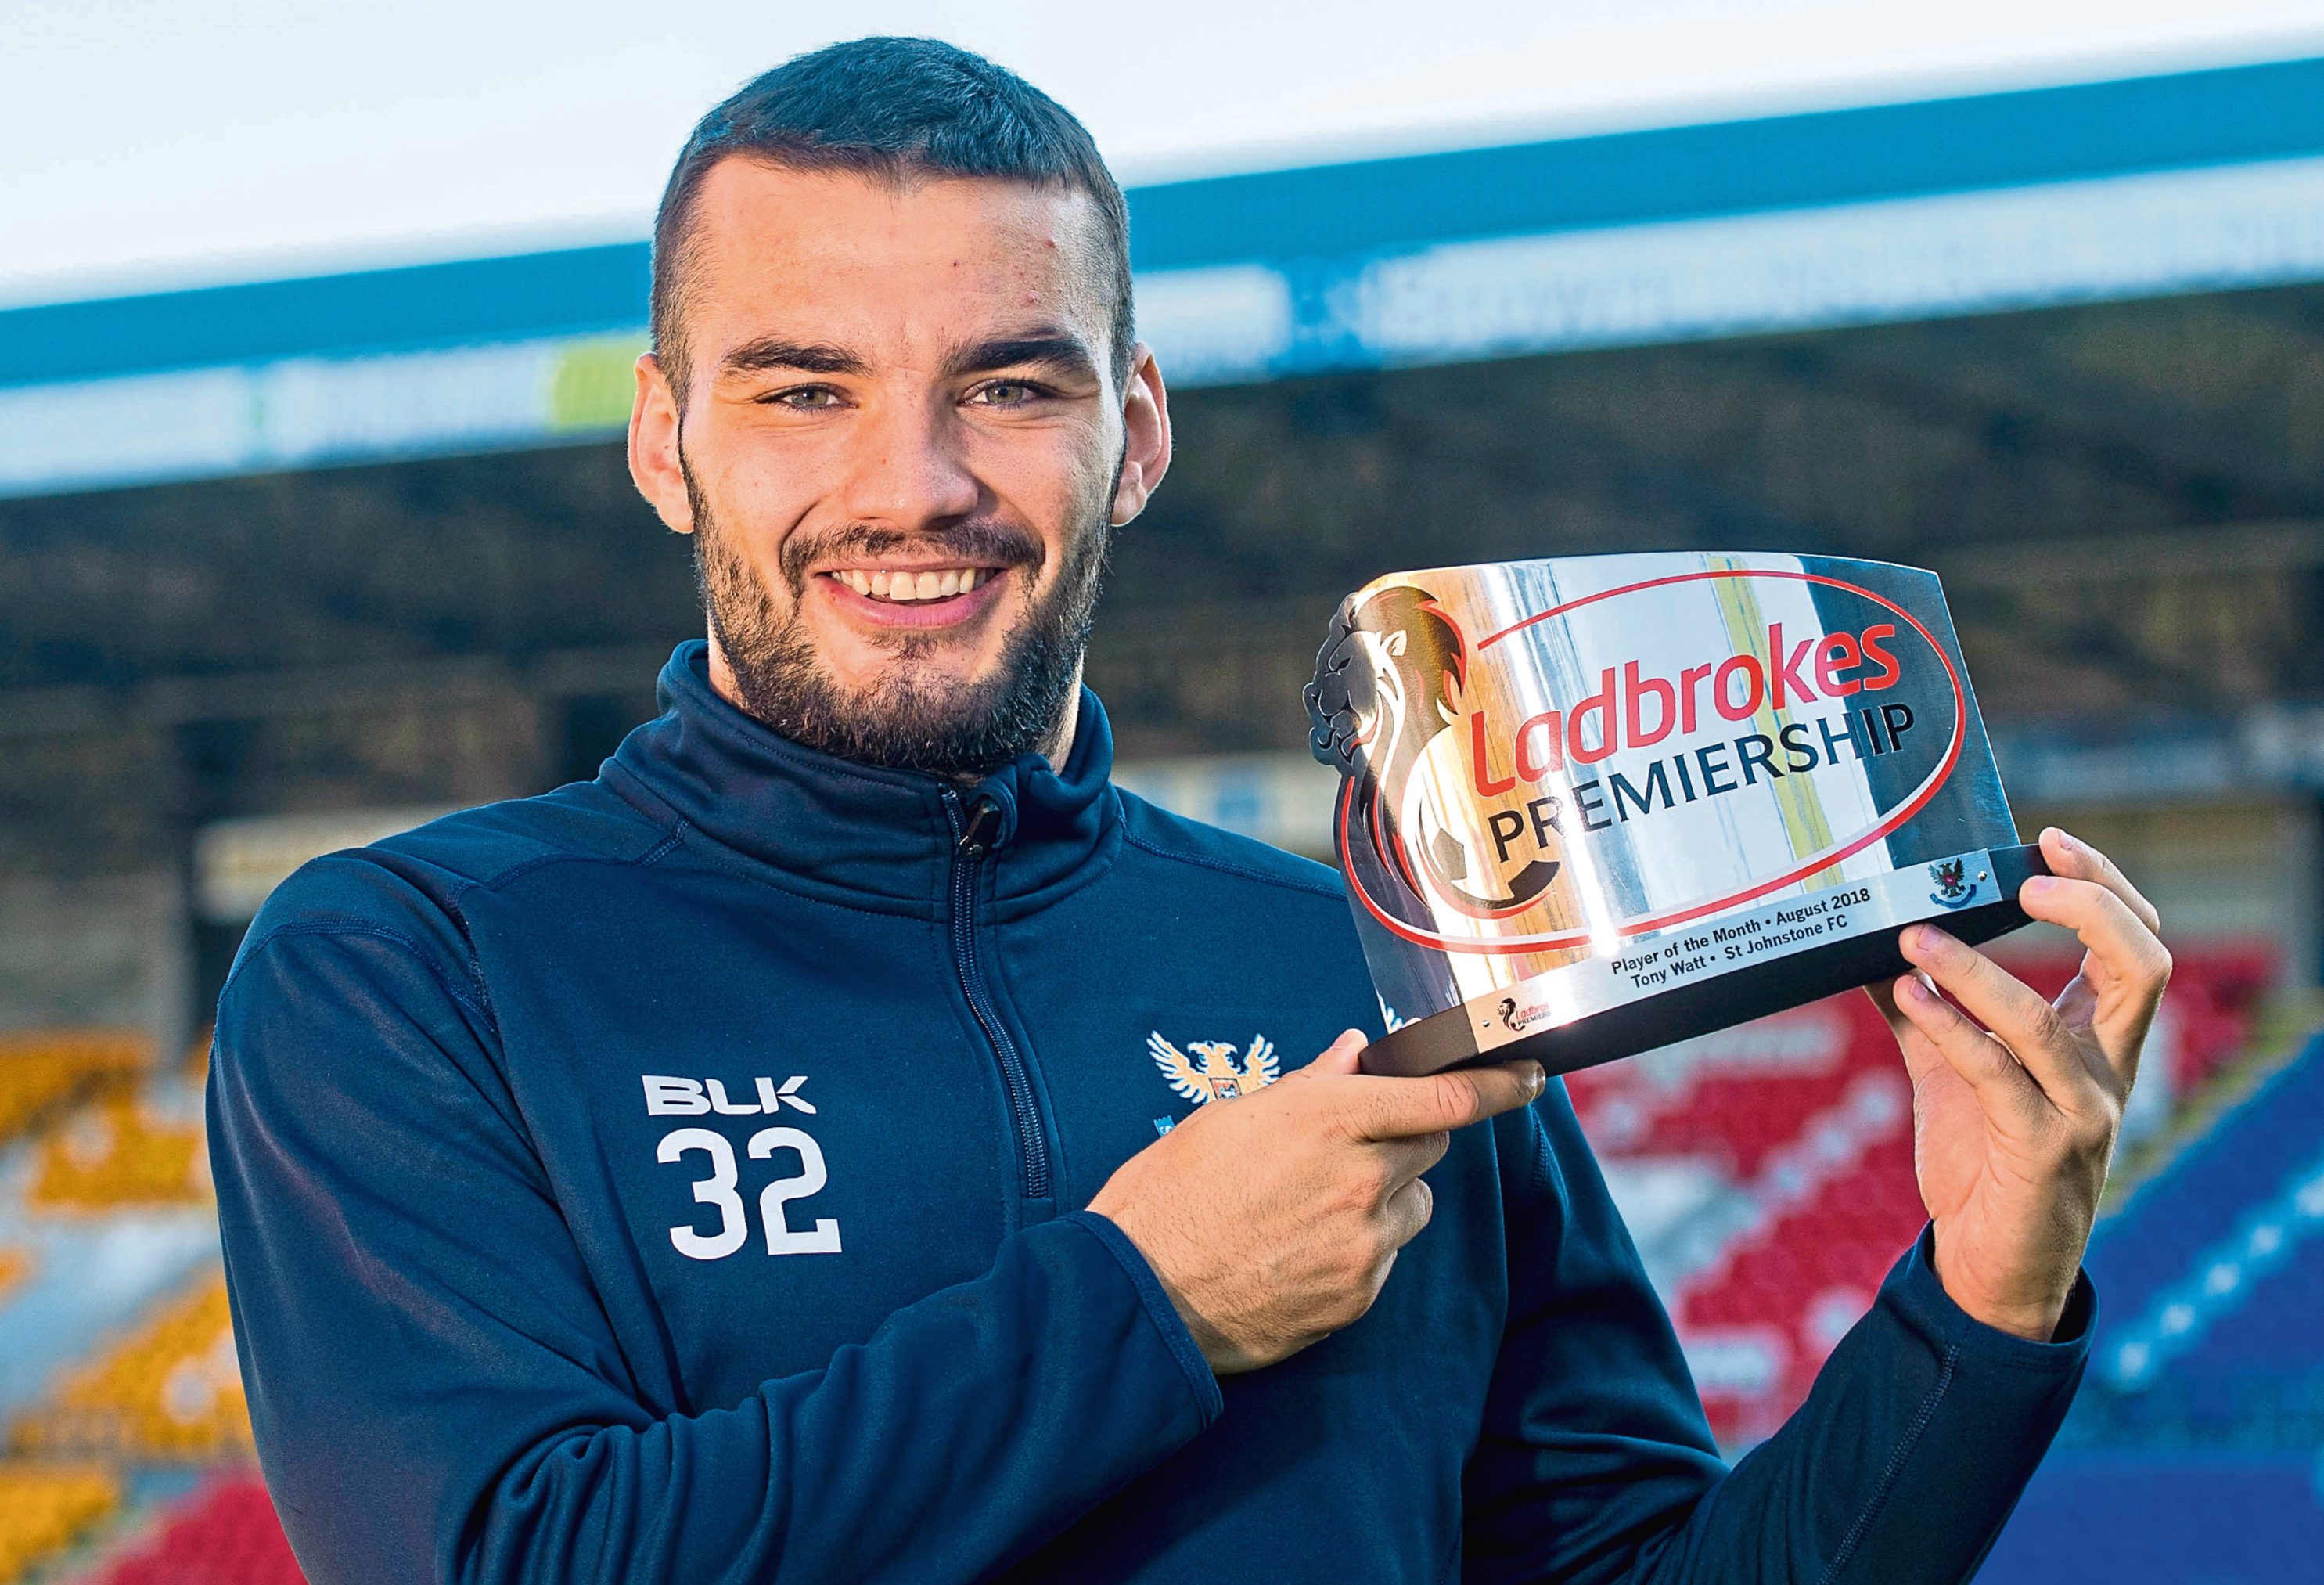 St Johnstone's Tony Watt receives the Ladbrokes Player of the Month Award for August.